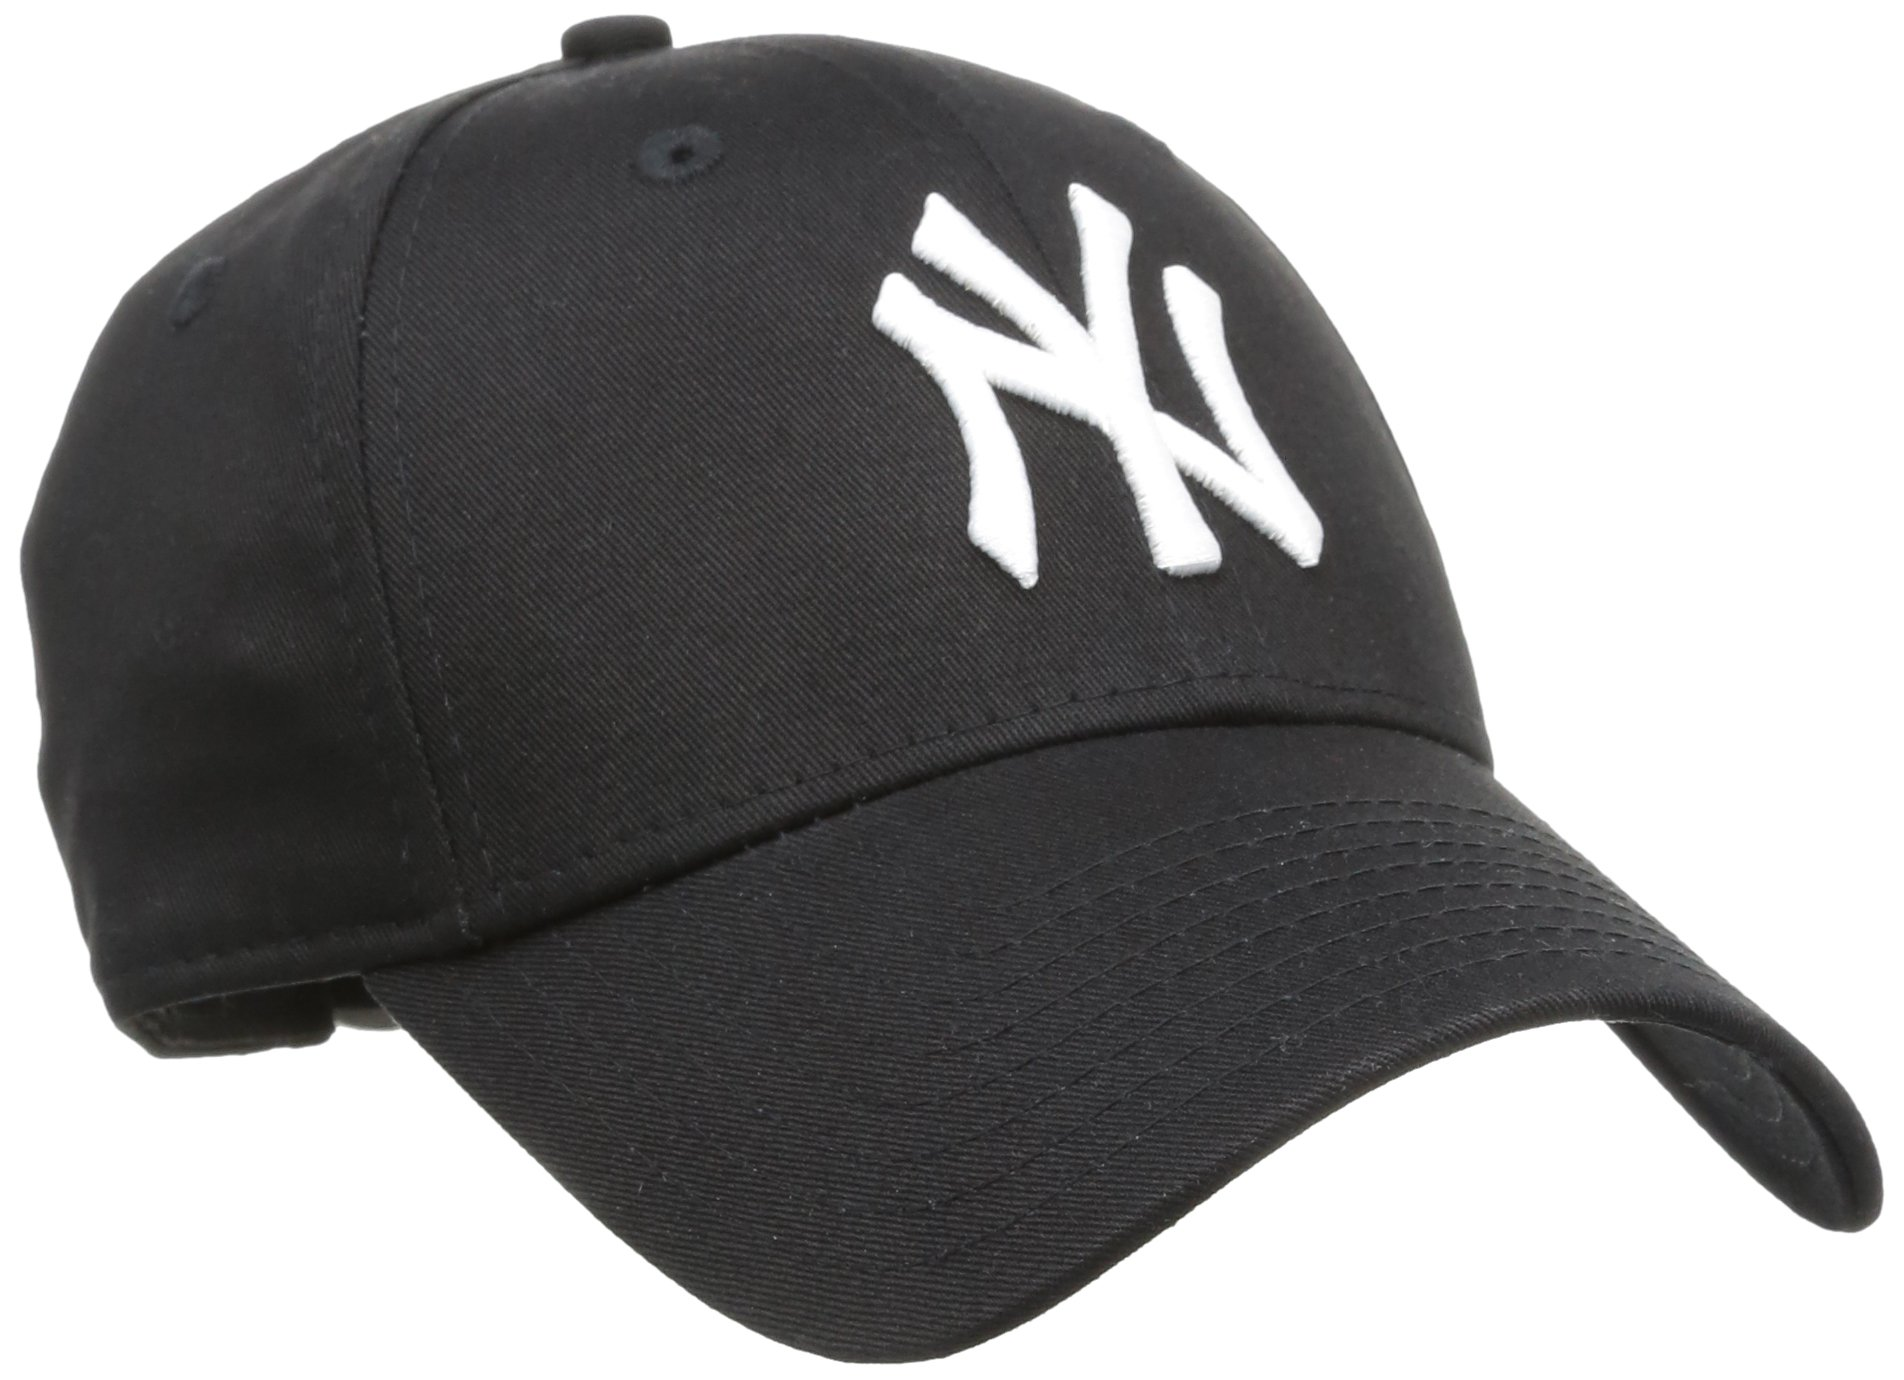 9416f549566 New Era Men s MLB Basic NY Yankees 9Forty Adjustable Baseball Cap ...